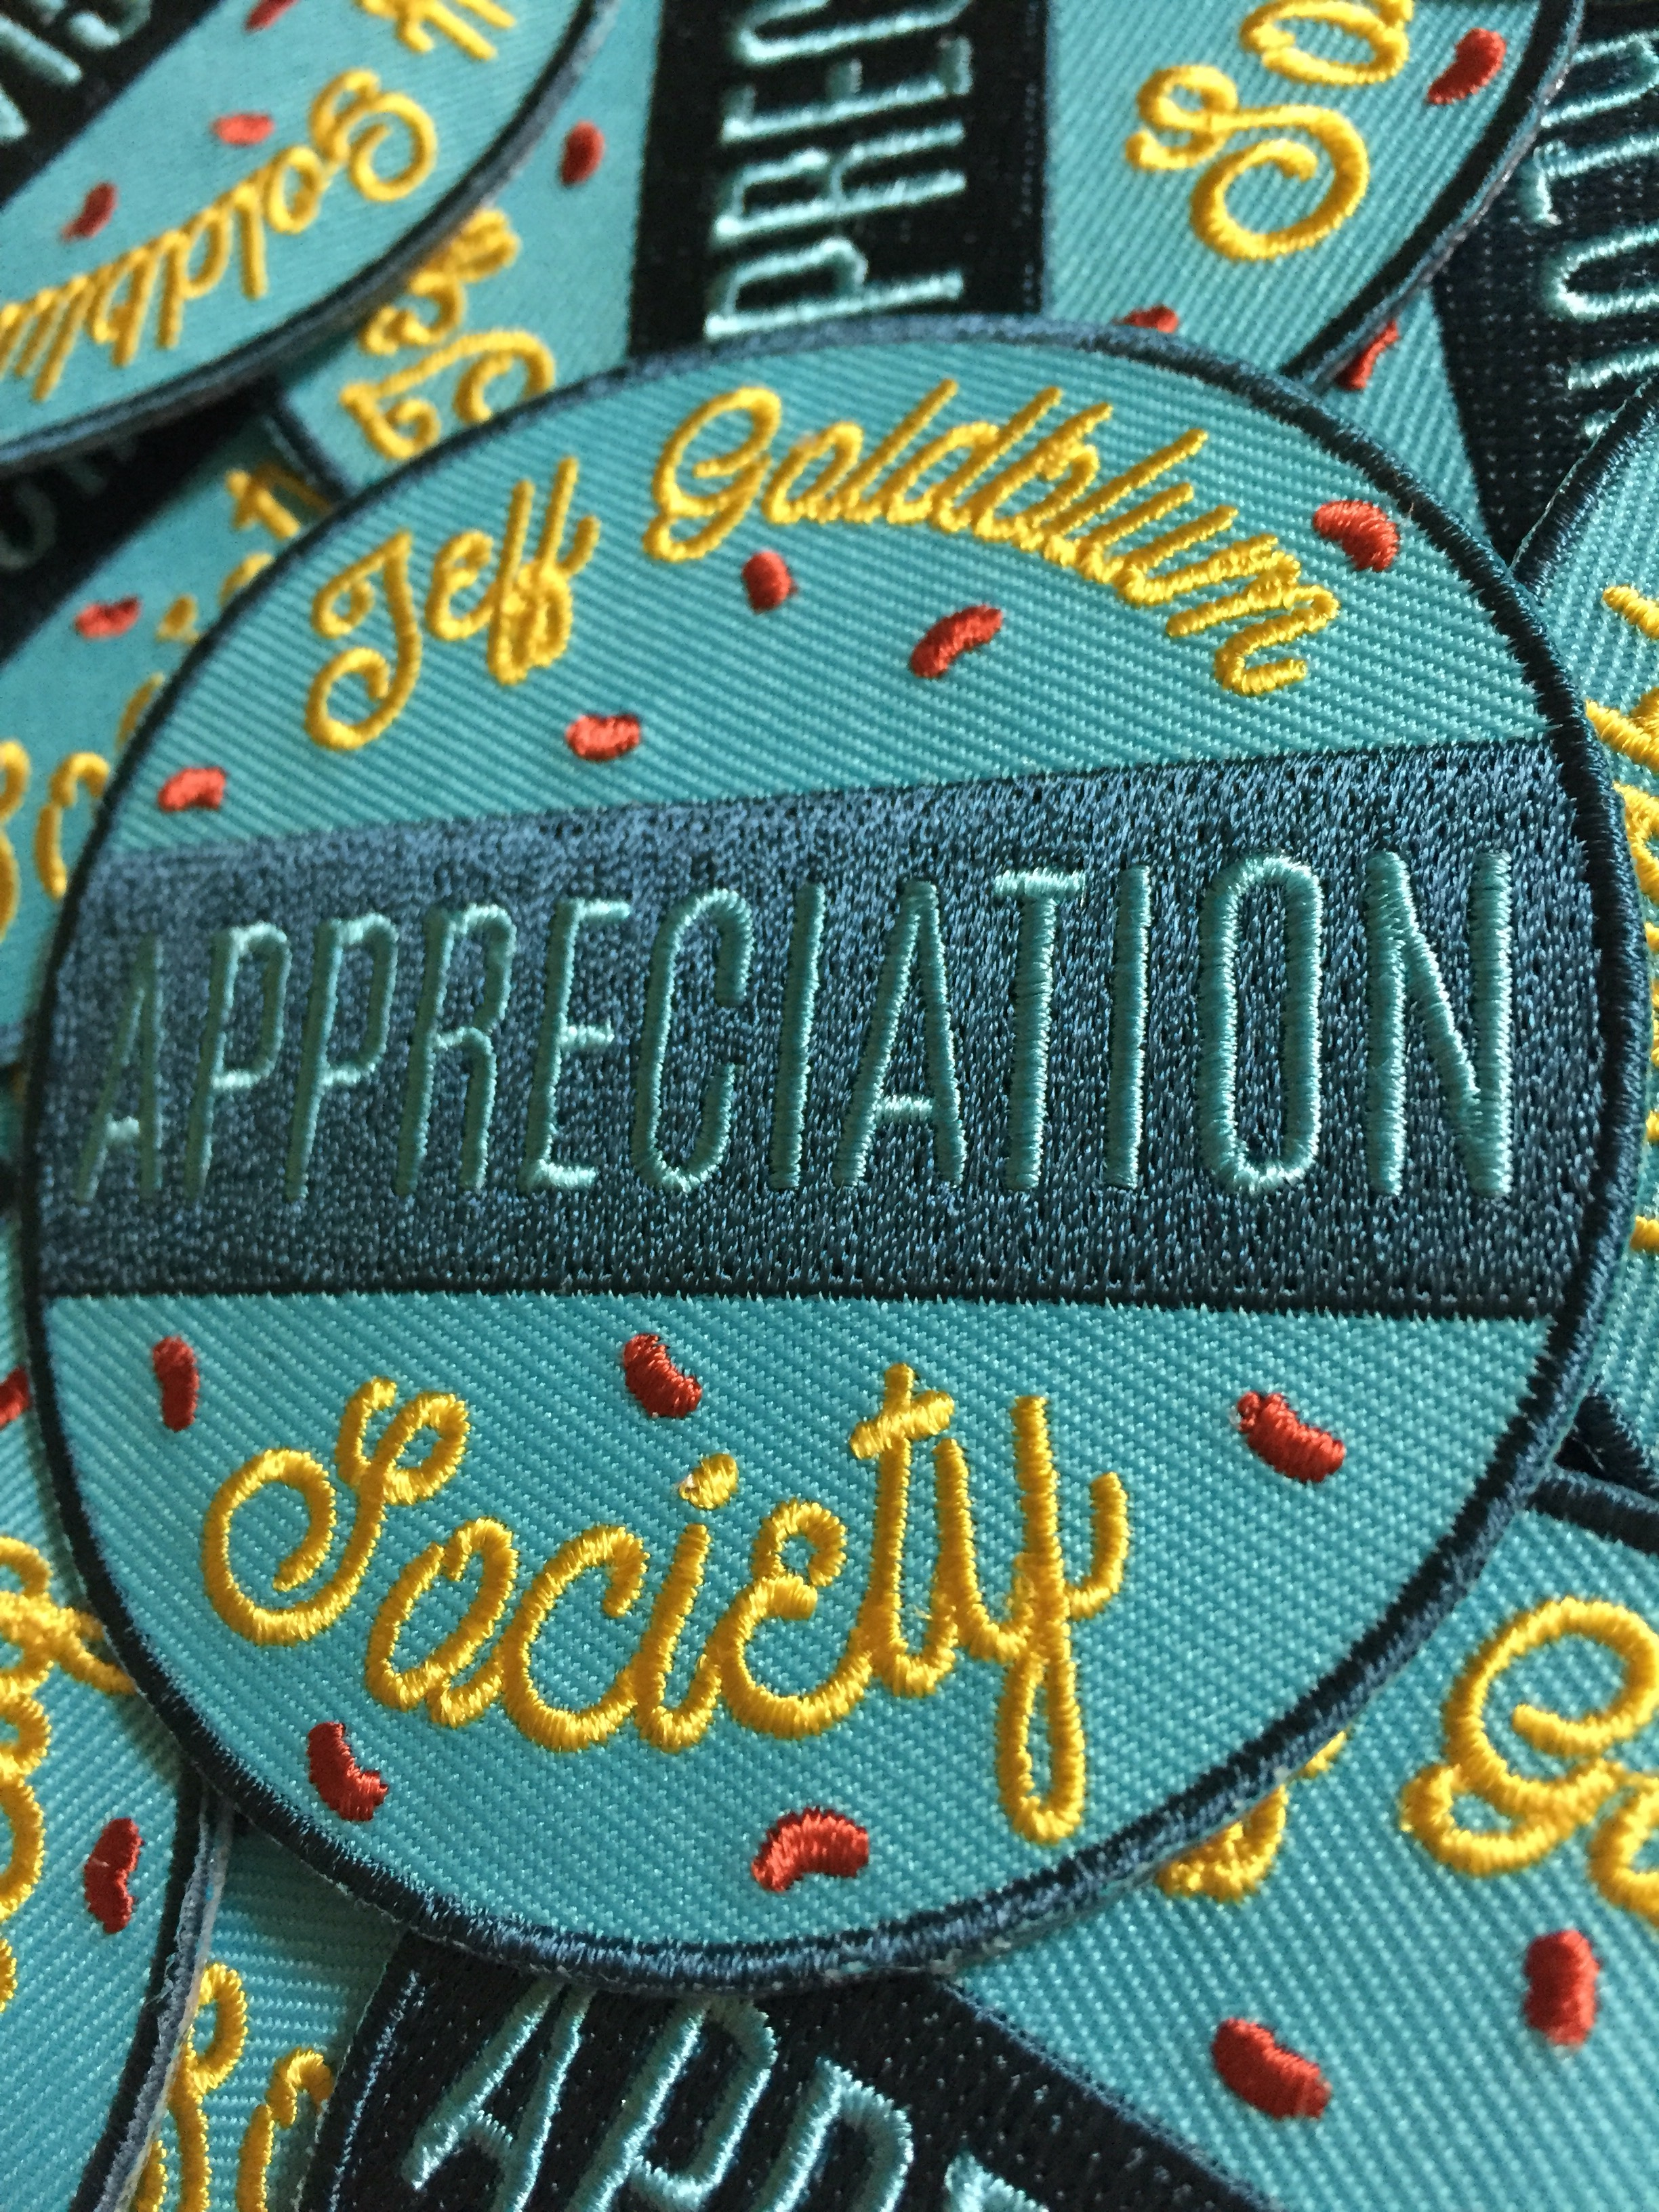 Jeff Goldblum Appreciation Society Patch